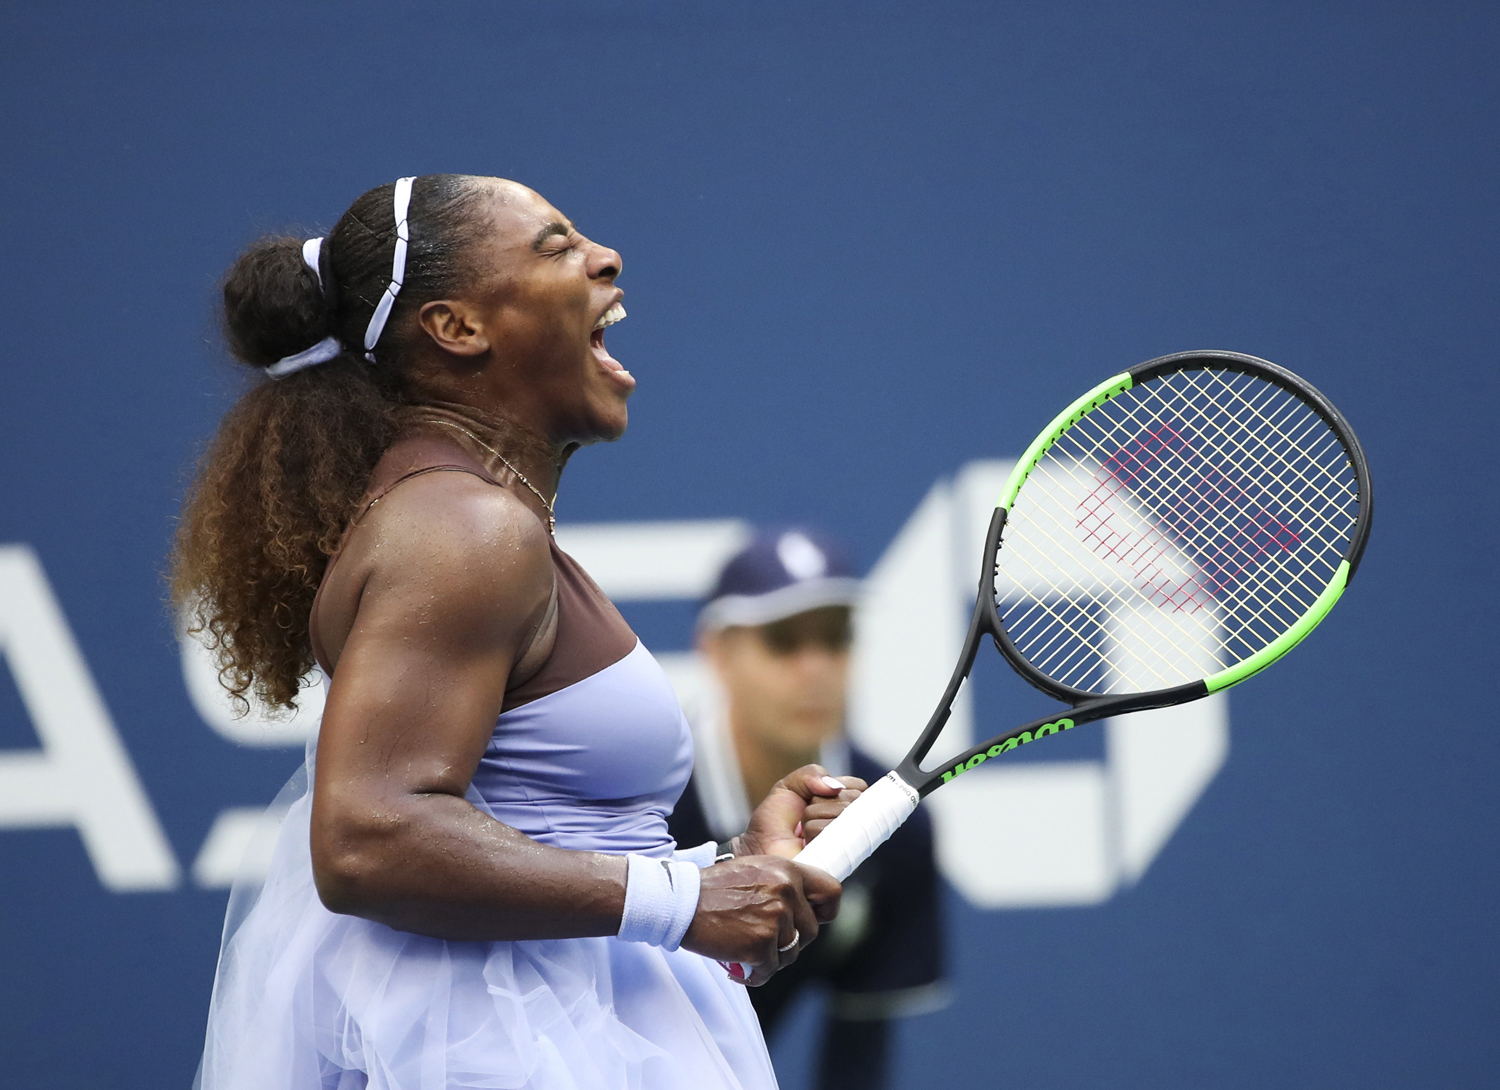 Serena Williams celebrates during her women's singles fourth-round victory against Kaia Kanepi at the 2018 U.S. Open on Sunday, Sept. 2, in Flushing Meadows, New York.